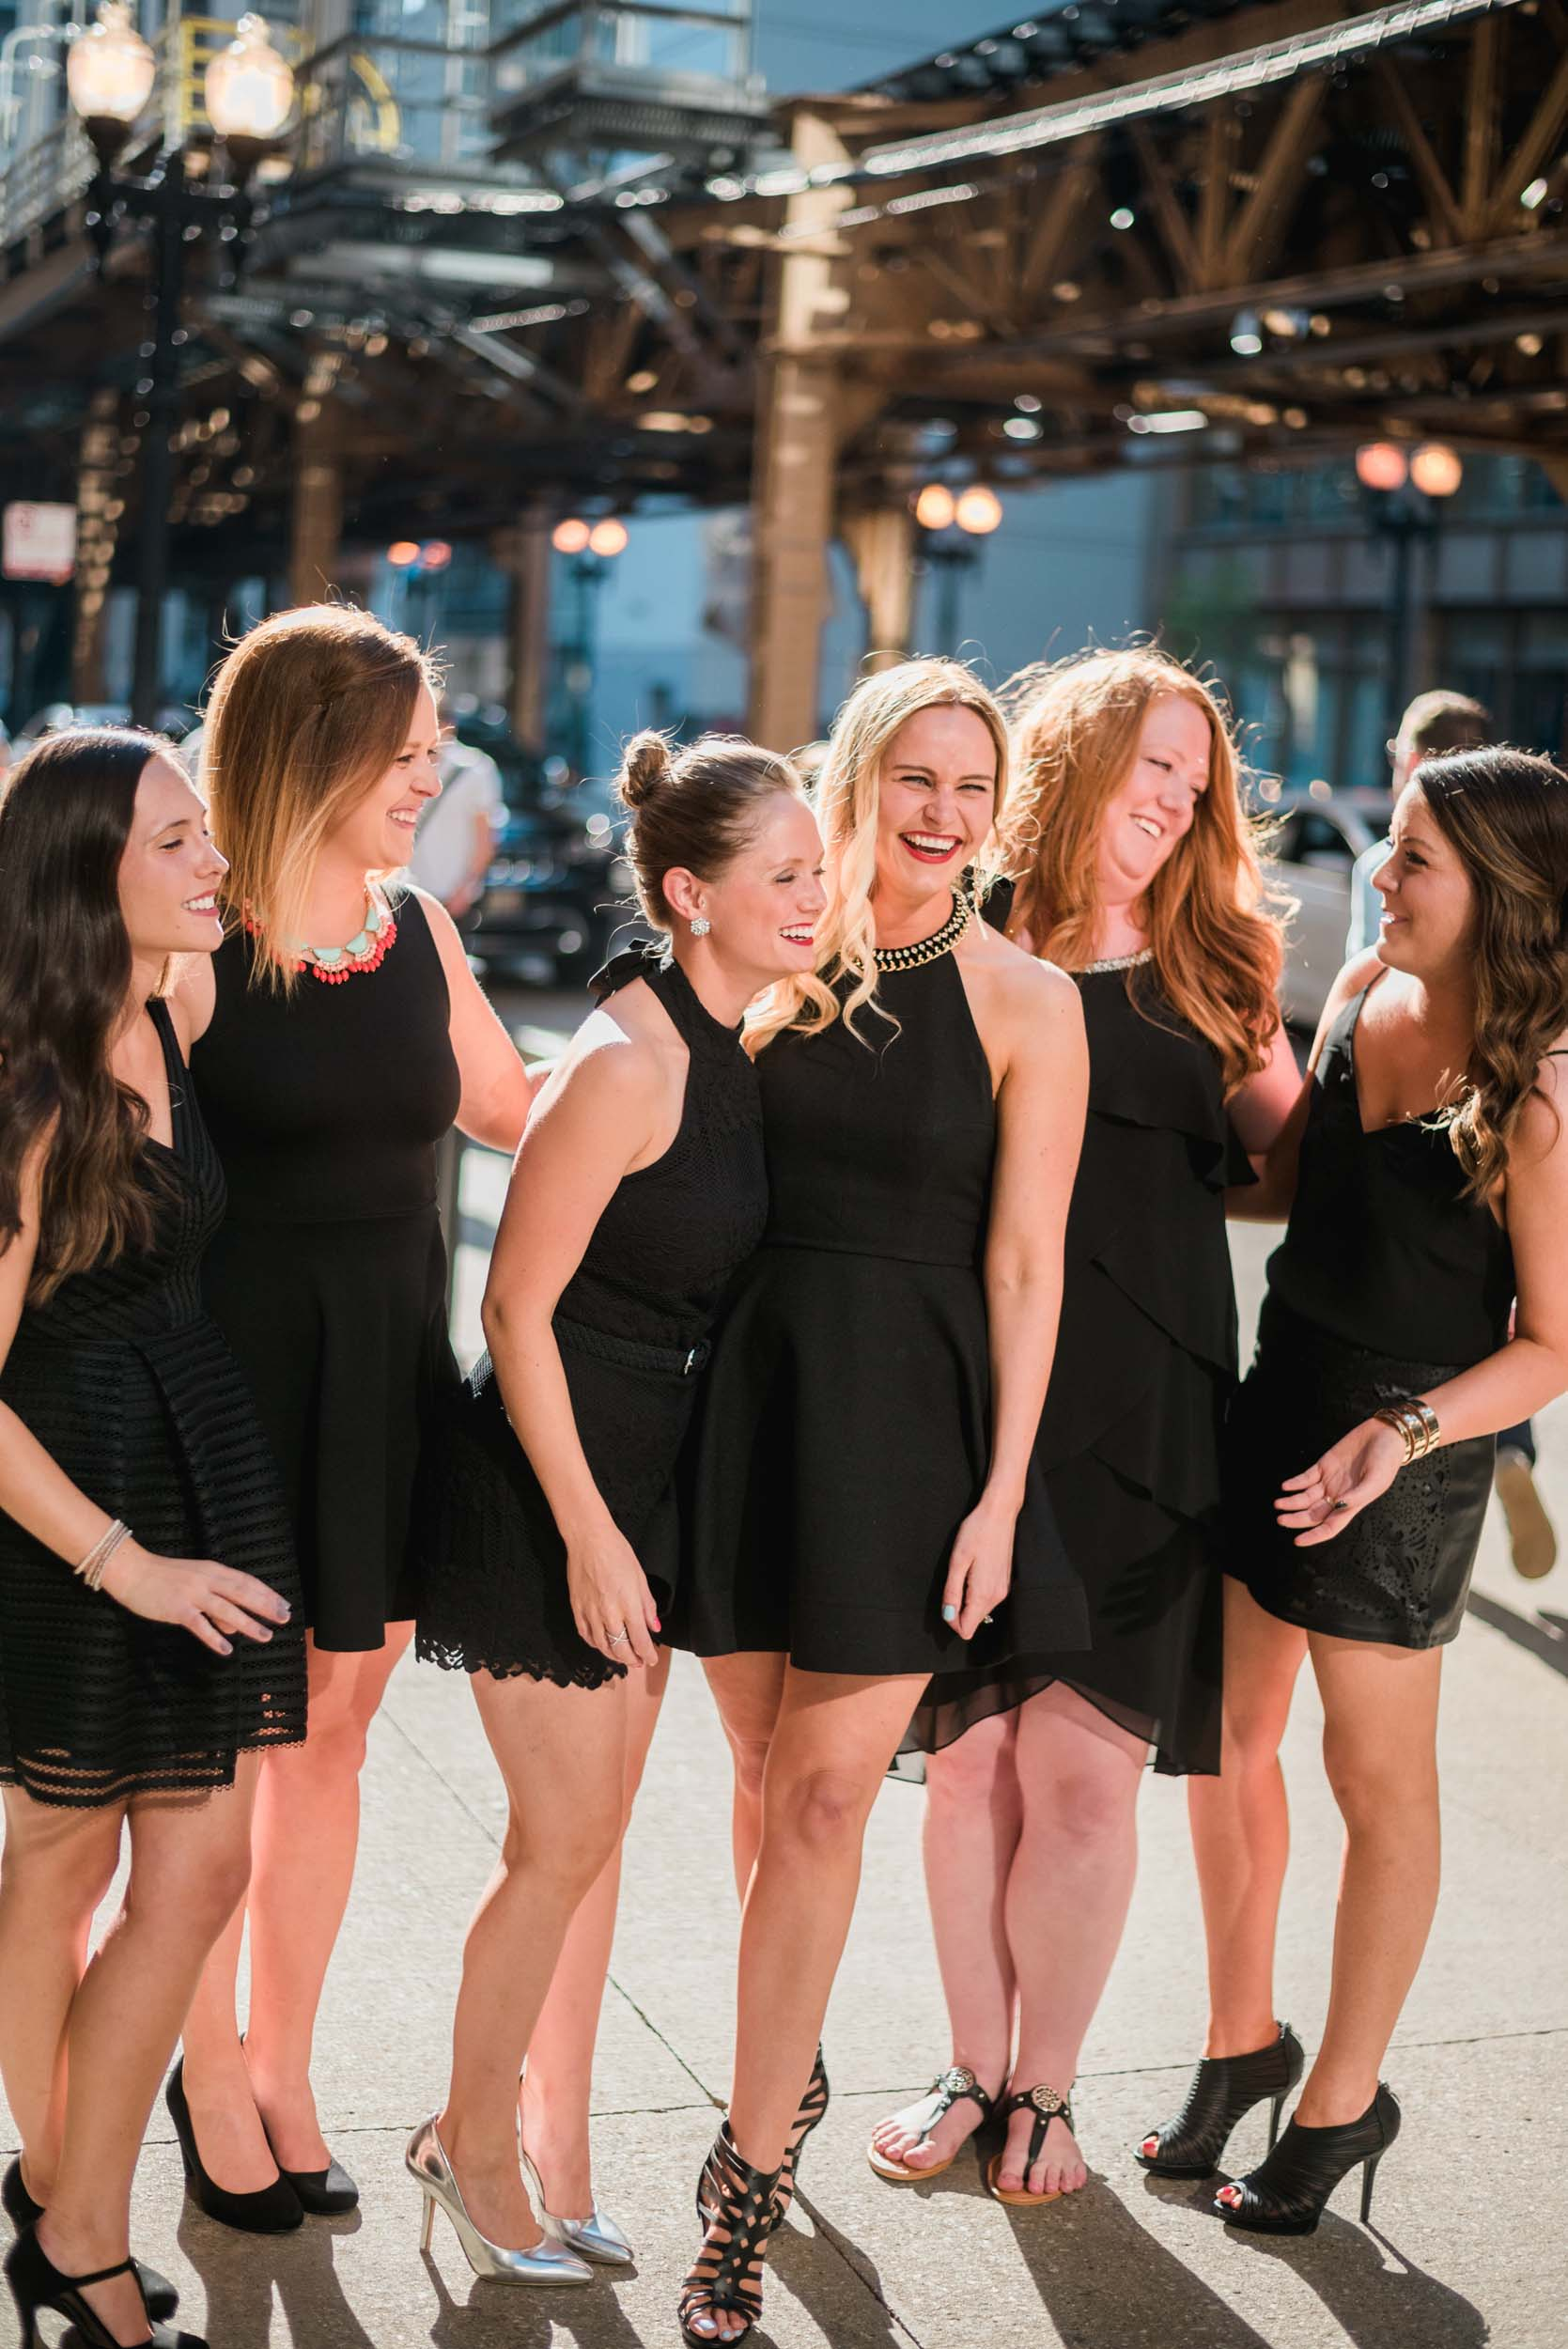 Six female friends on a bachelorette trip laughing together in Chicago, USA